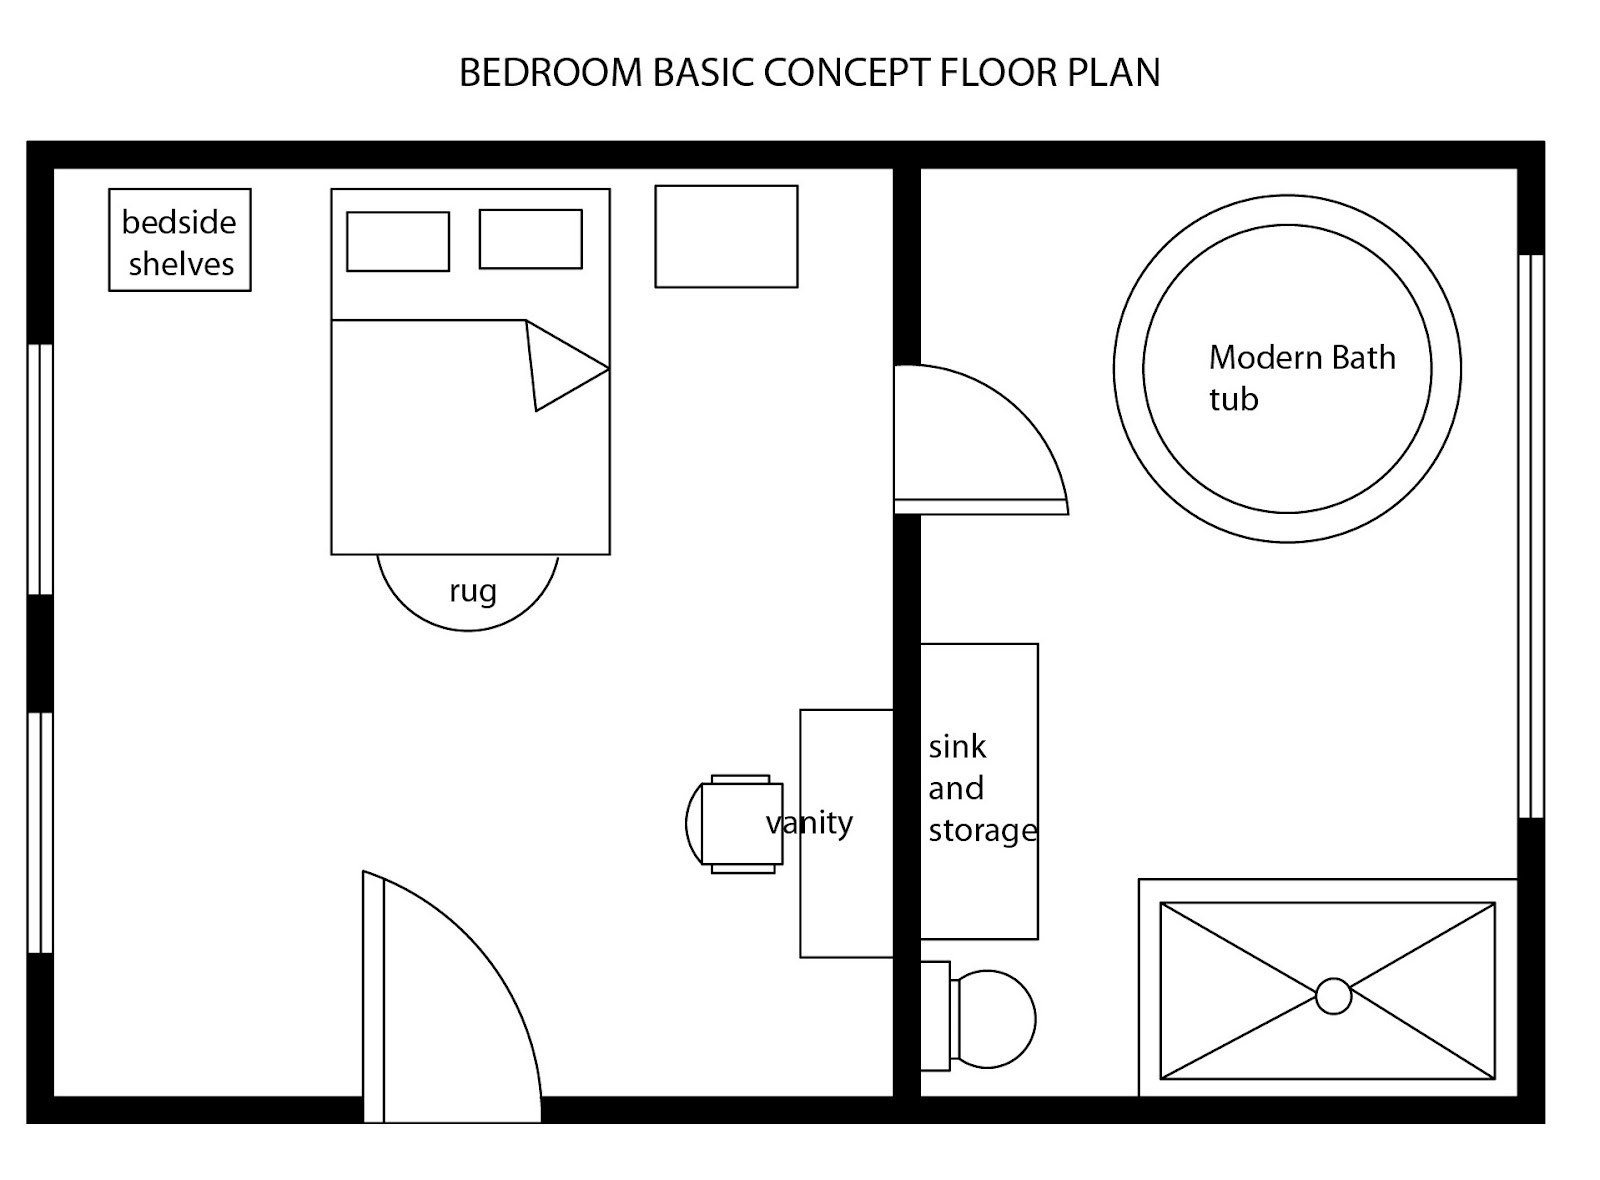 modern master bedroom floor plans interior design amp decor modern bedroom basic floor plan 19270